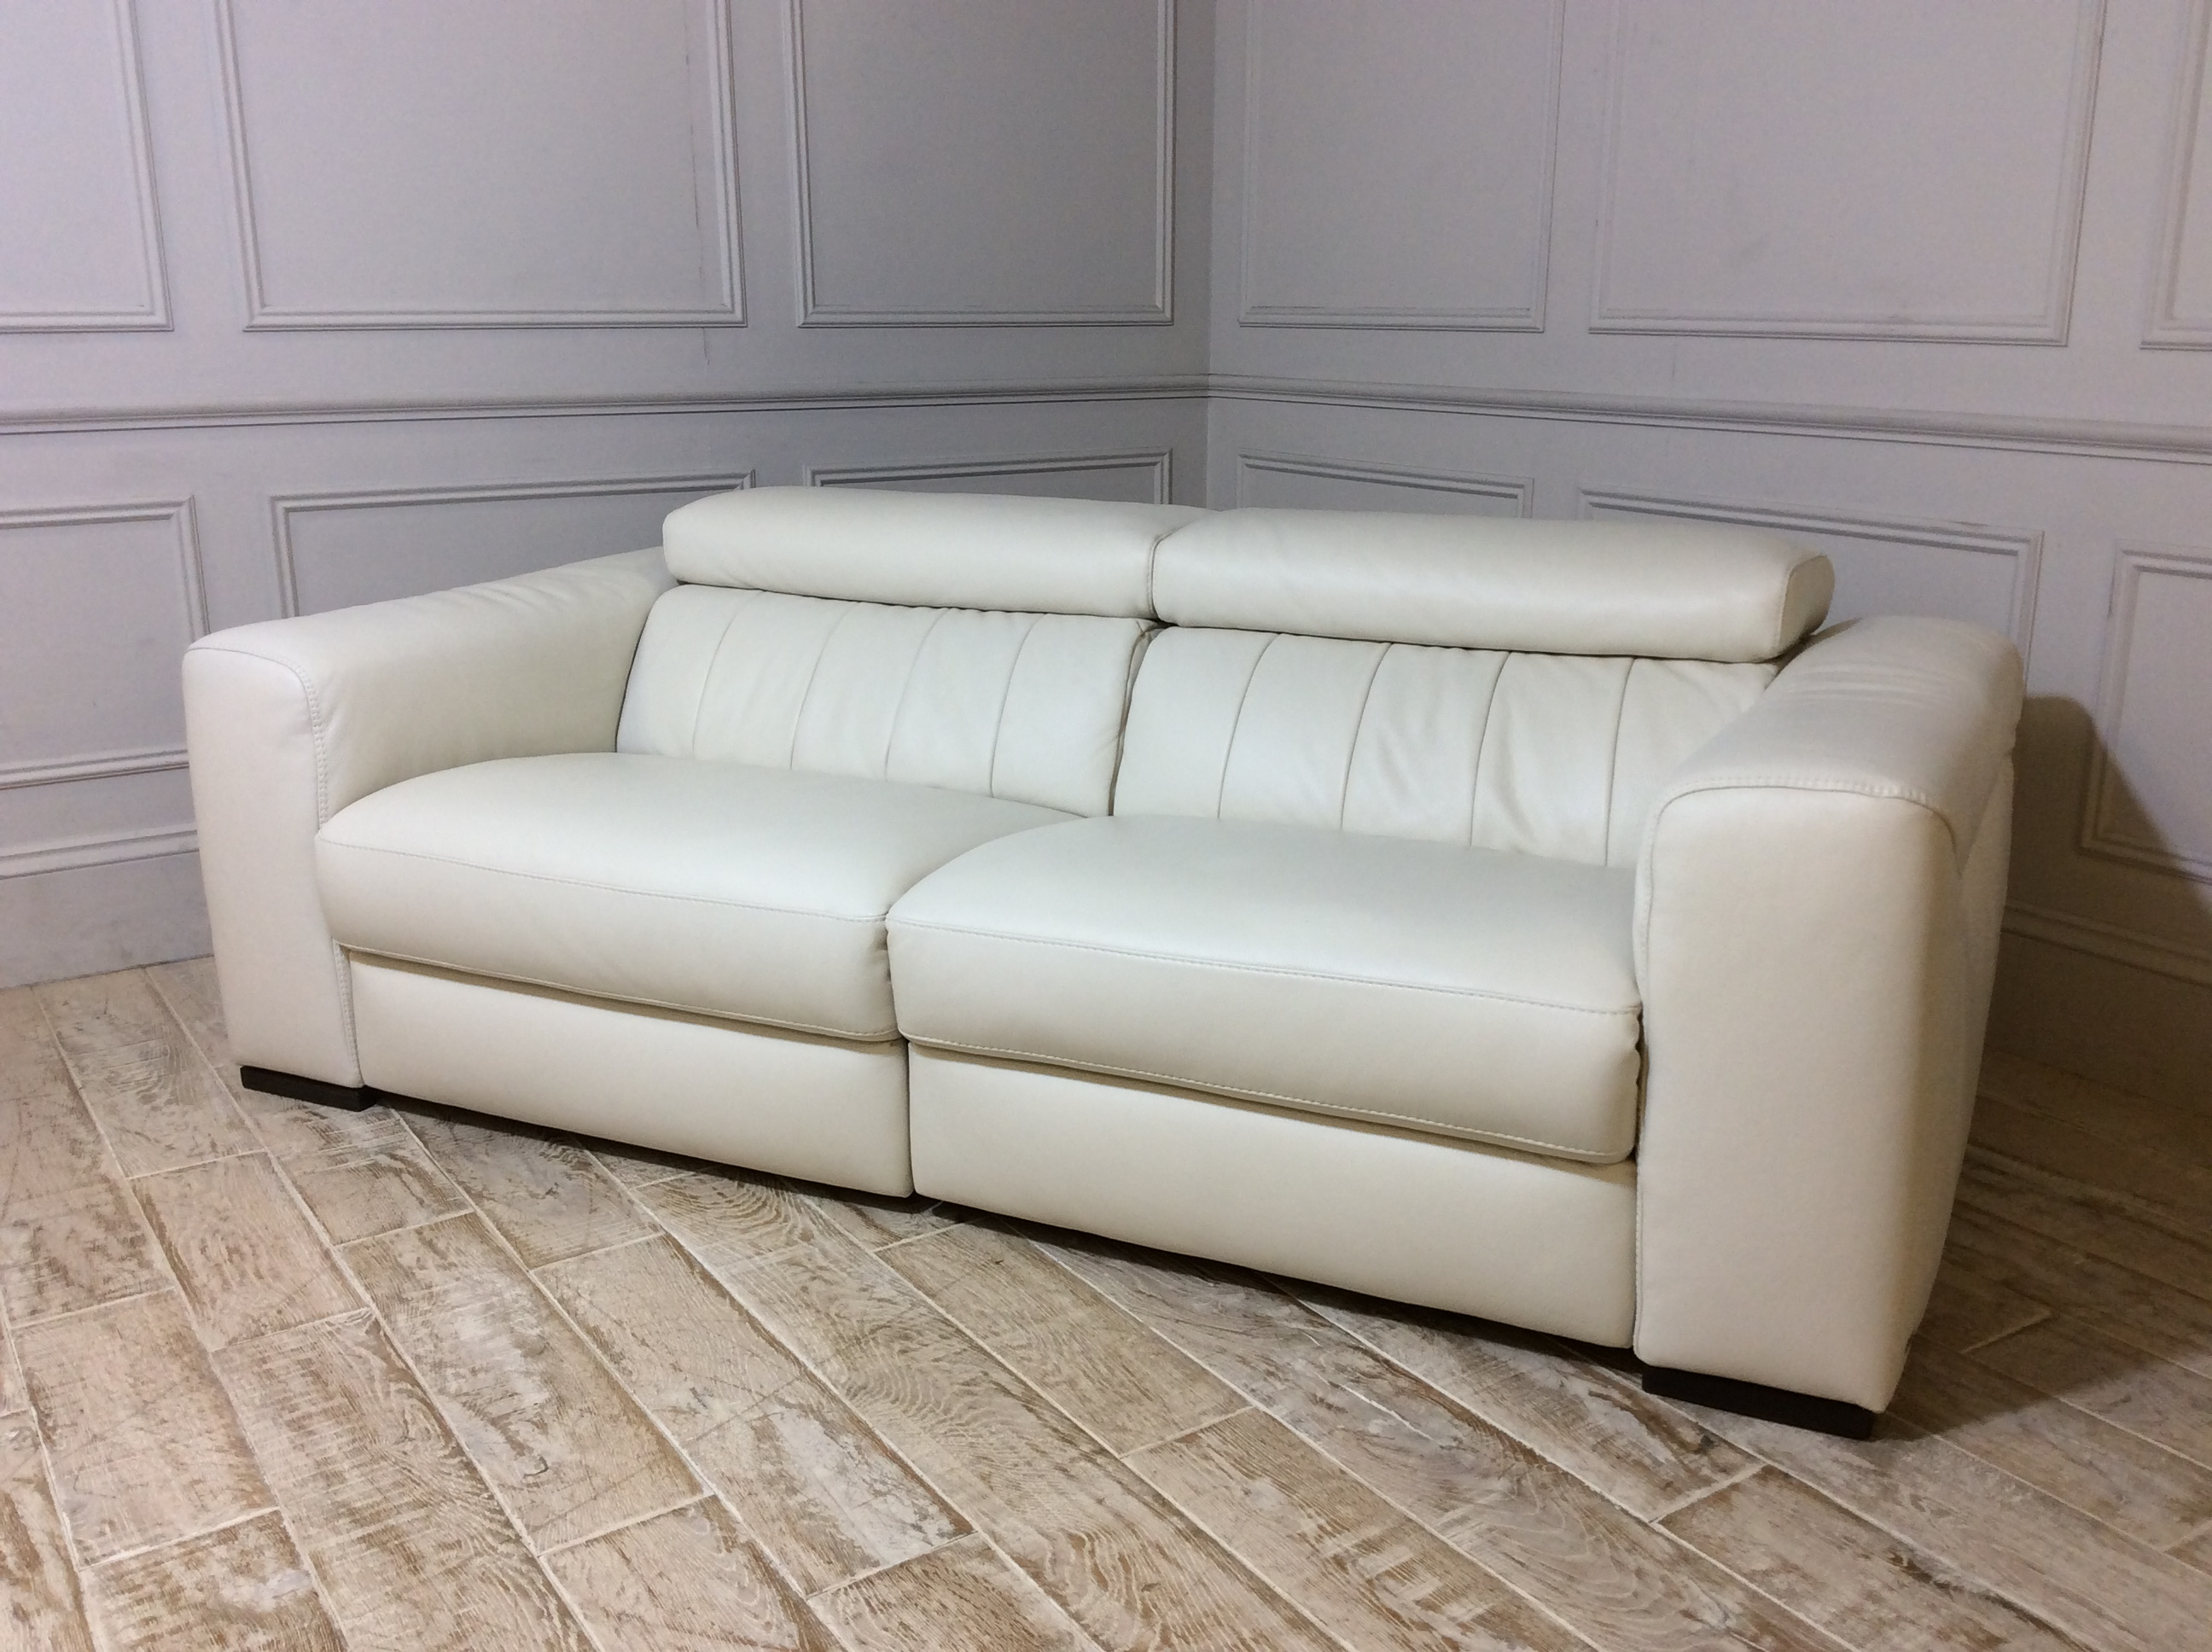 Florentina 2 Seater Leather Sofa with Electric Recliner in 20JH